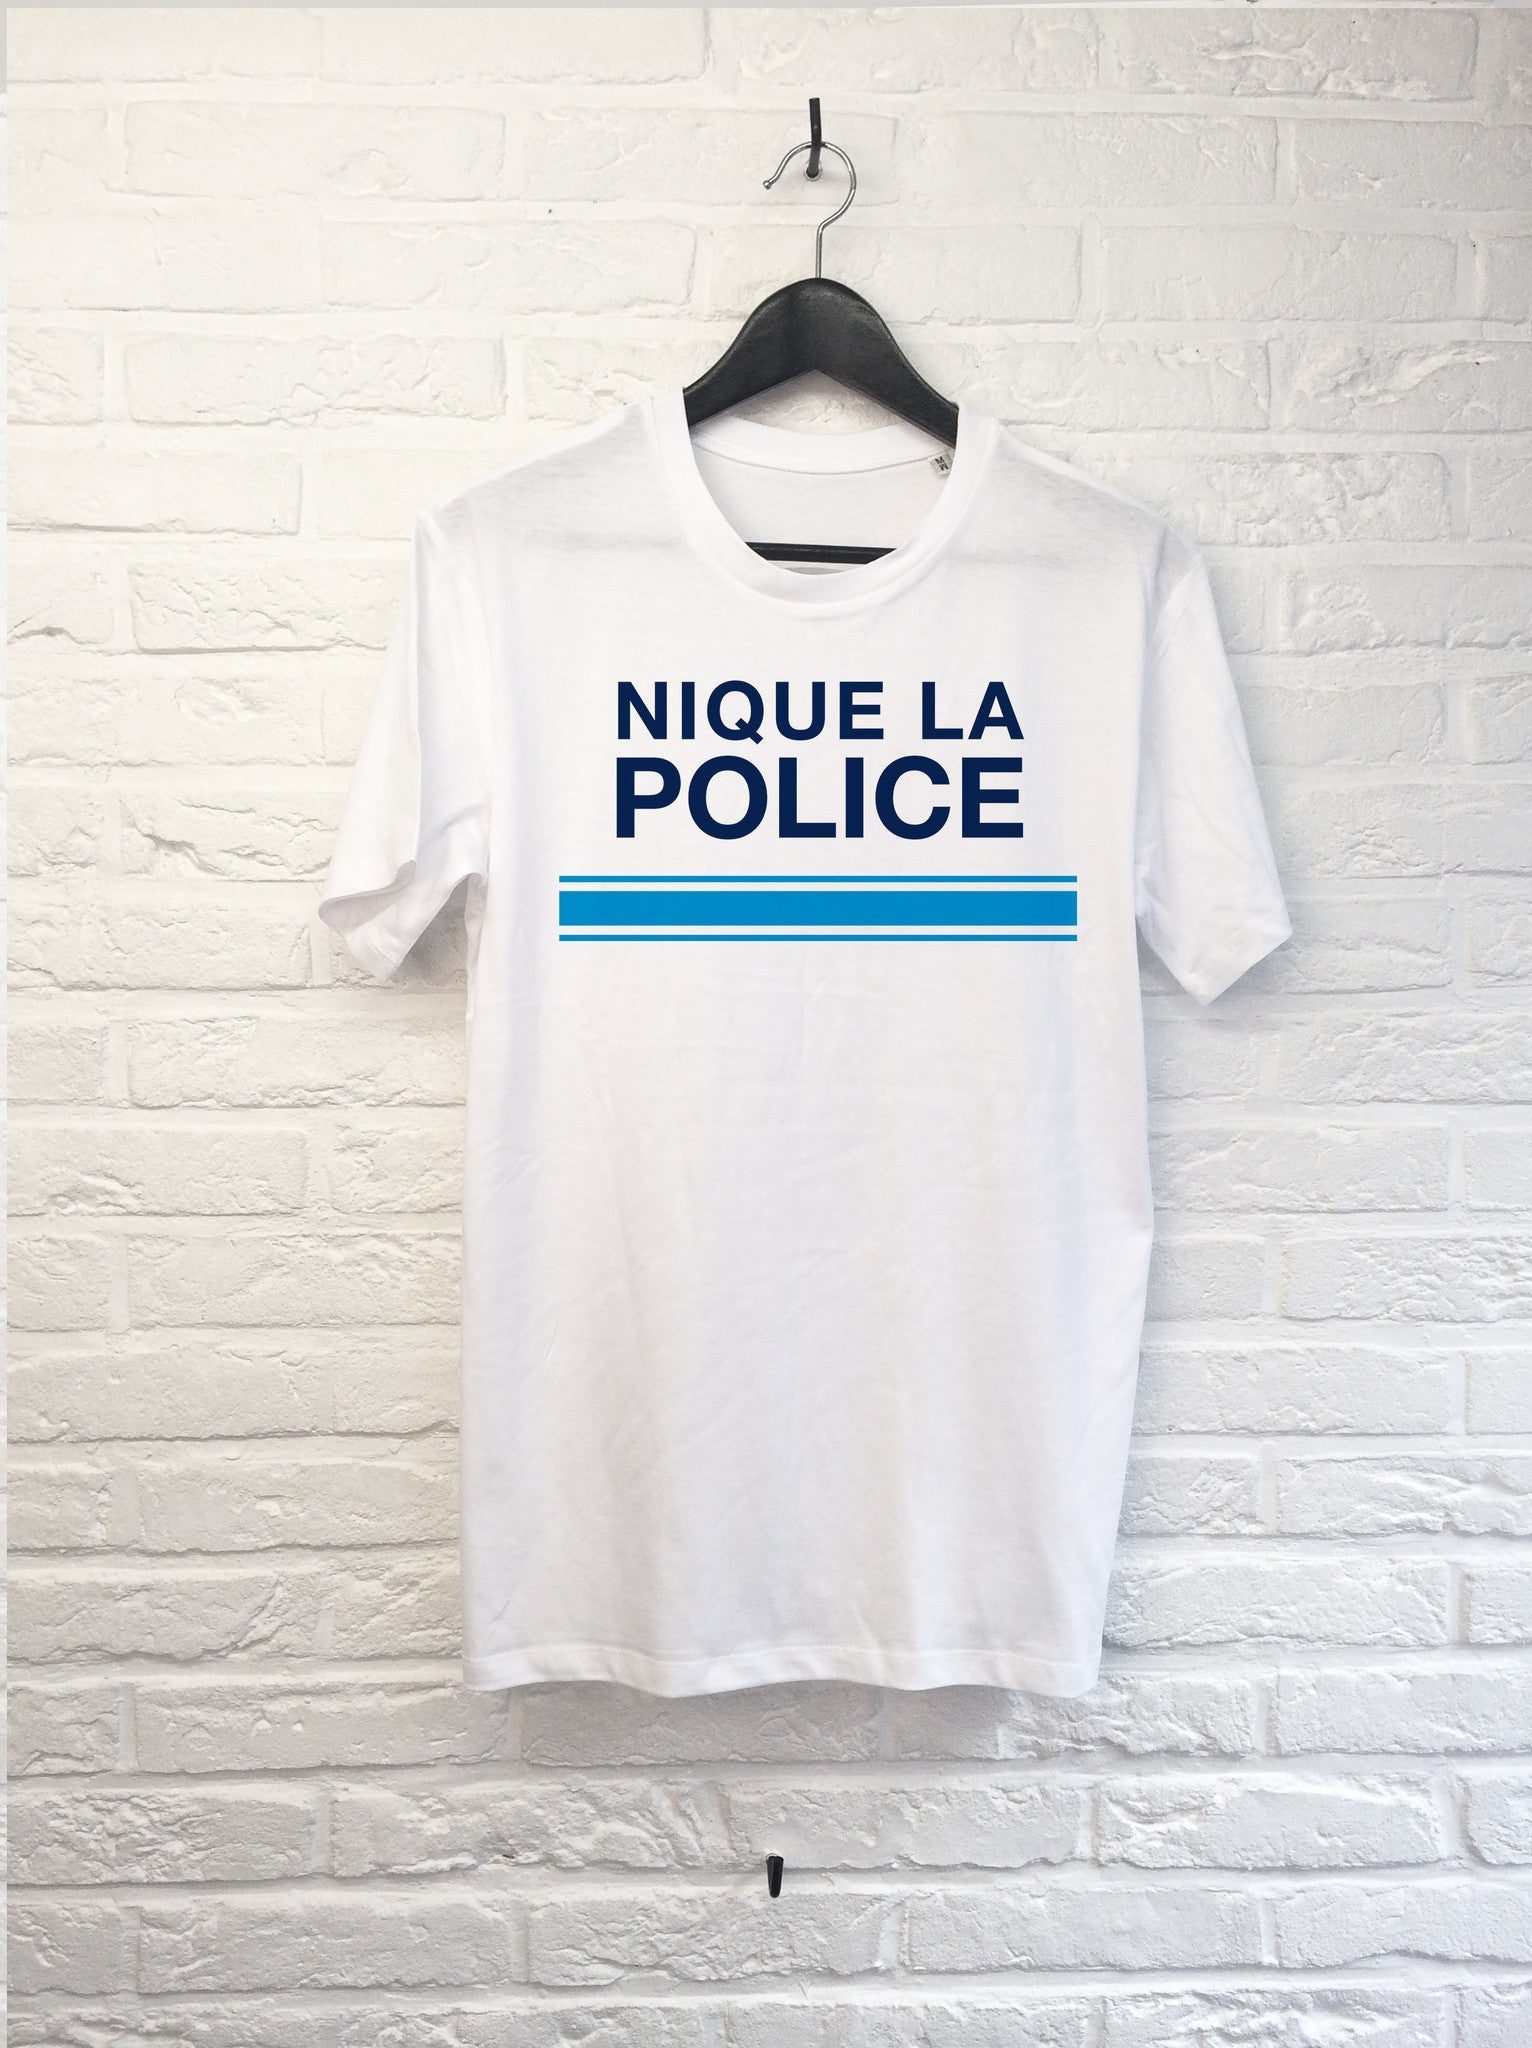 Police-T shirt-Atelier Amelot